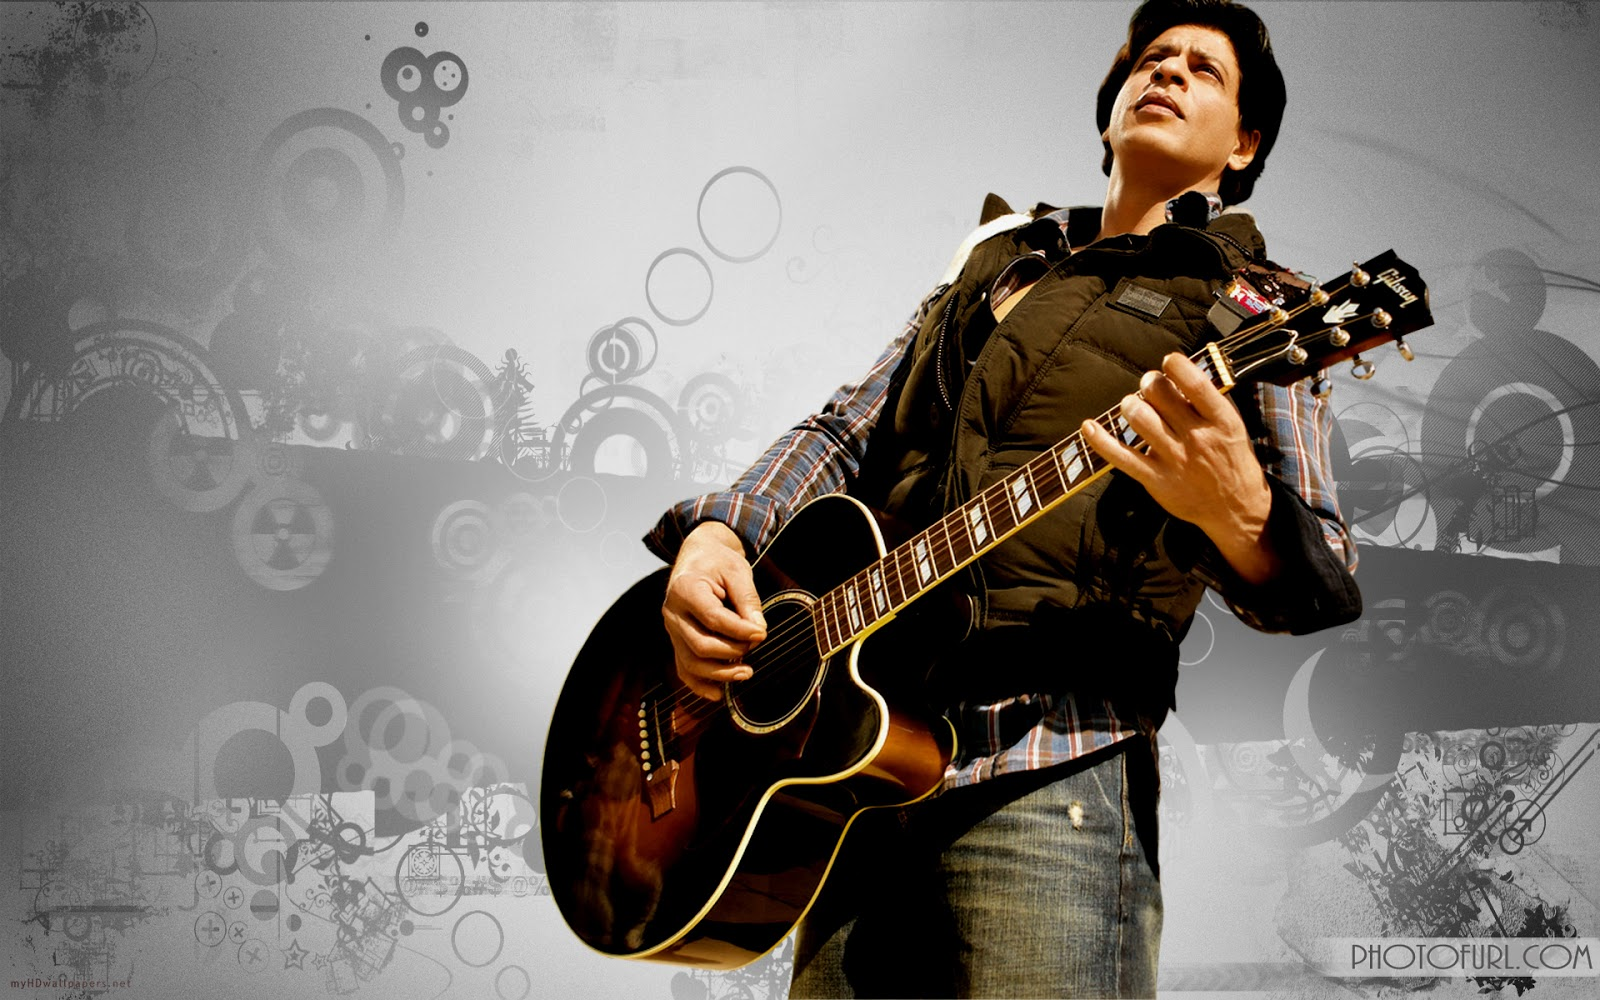 Hd wallpapers download shahrukh khan wallpapers hd 2015 - Shahrukh khan cool wallpaper ...